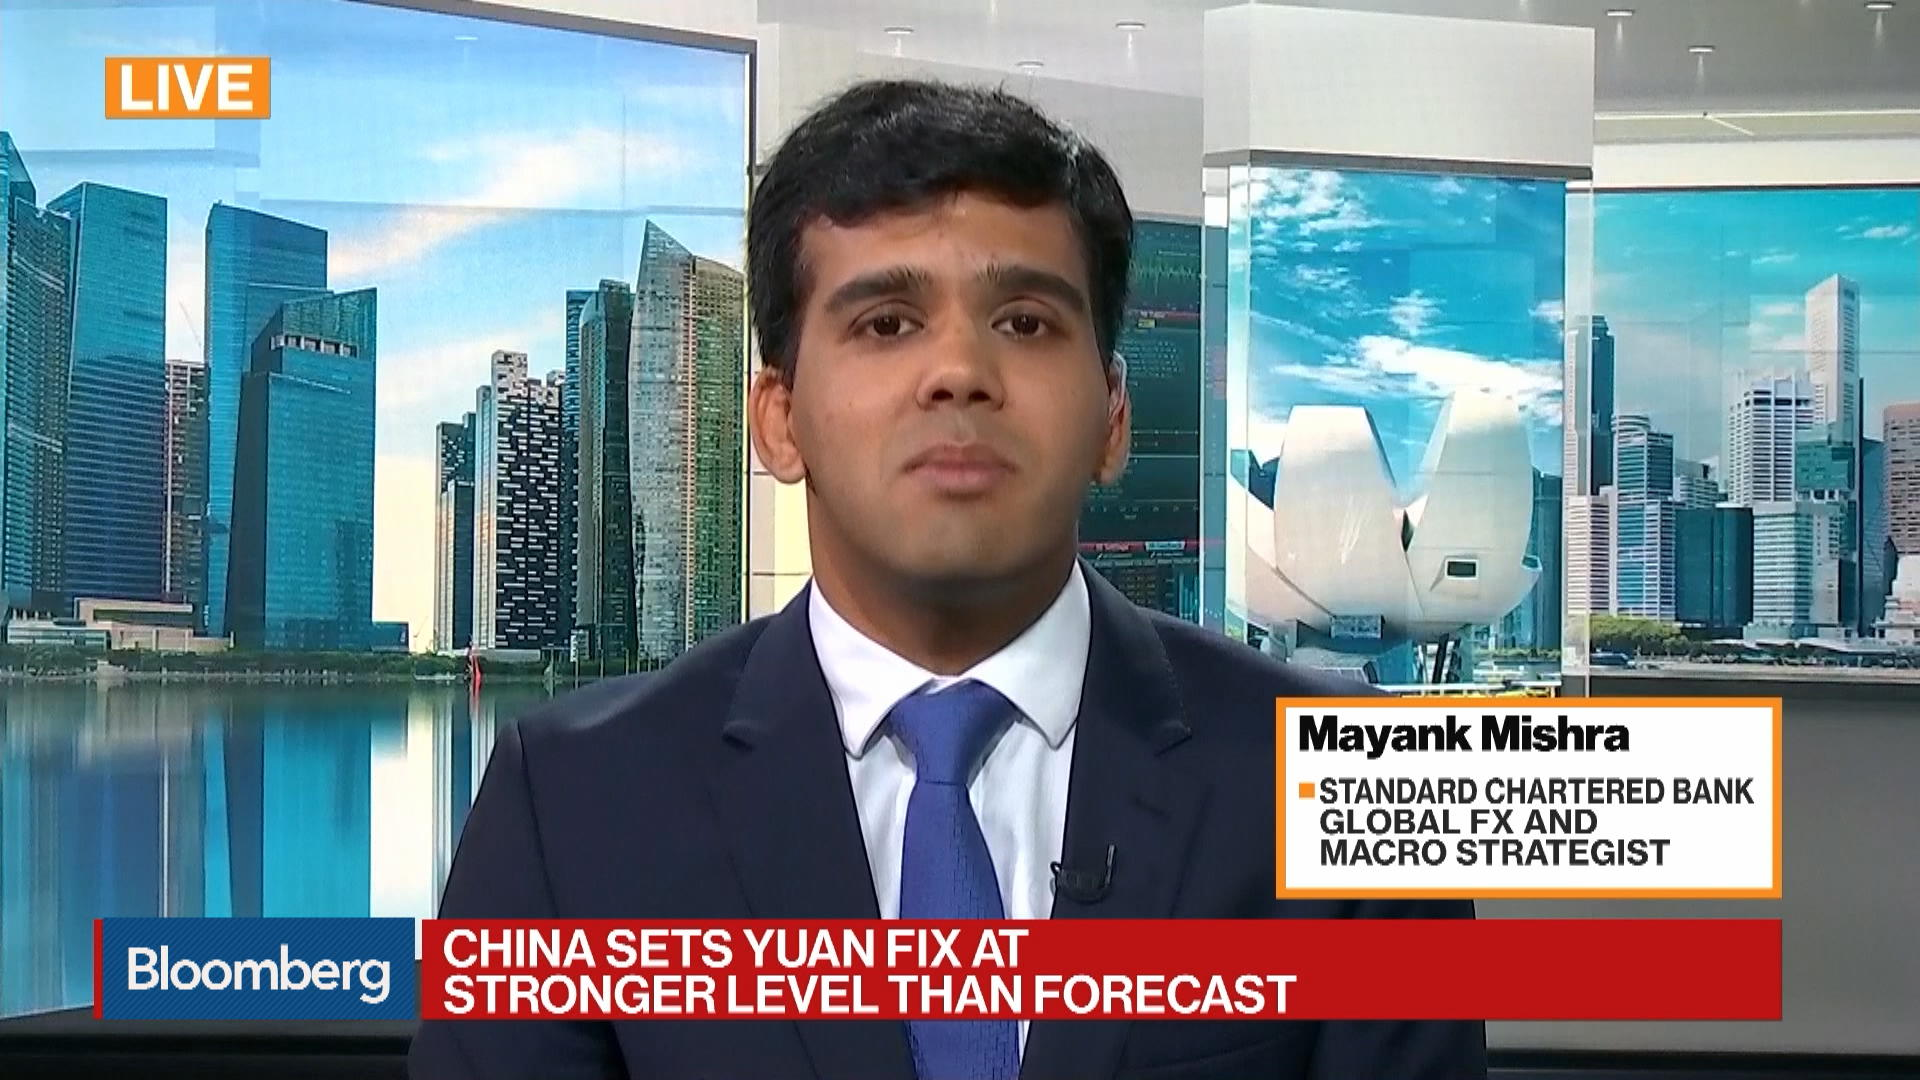 Standard Chartered Global FX and Macro Strategist Mayank Mishra on Yuan Fixing, Asian Currencies